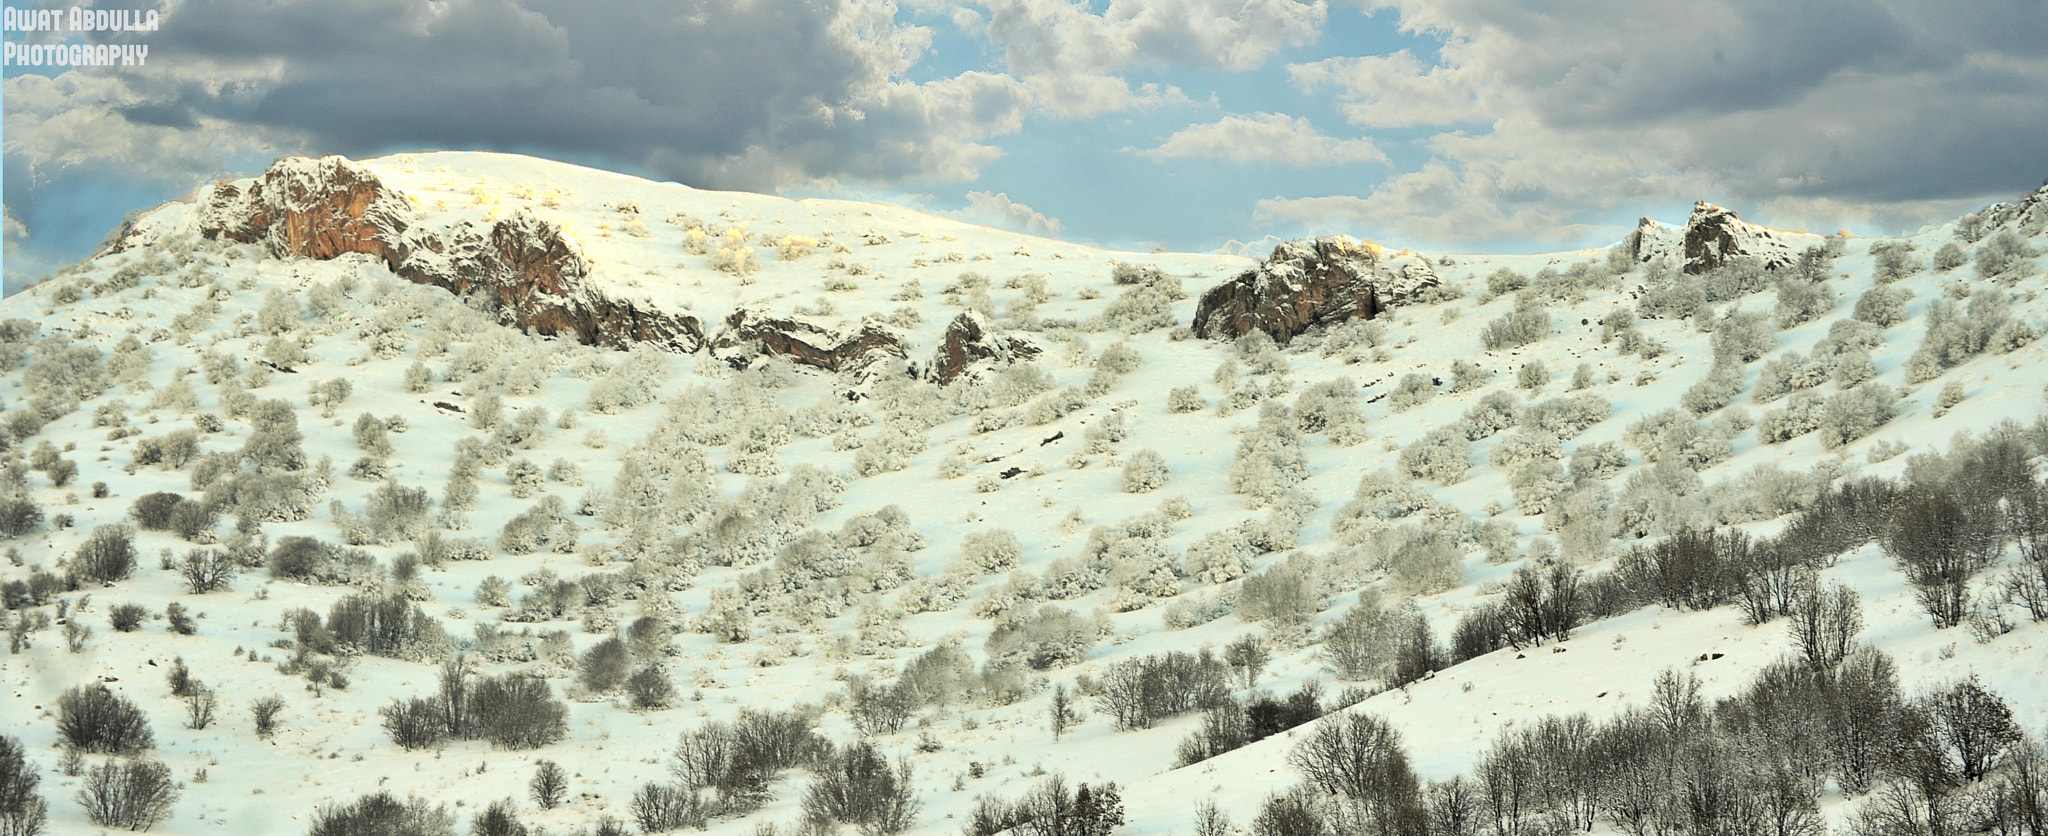 Photograph Nature SNow by Awat Abdulla on 500px